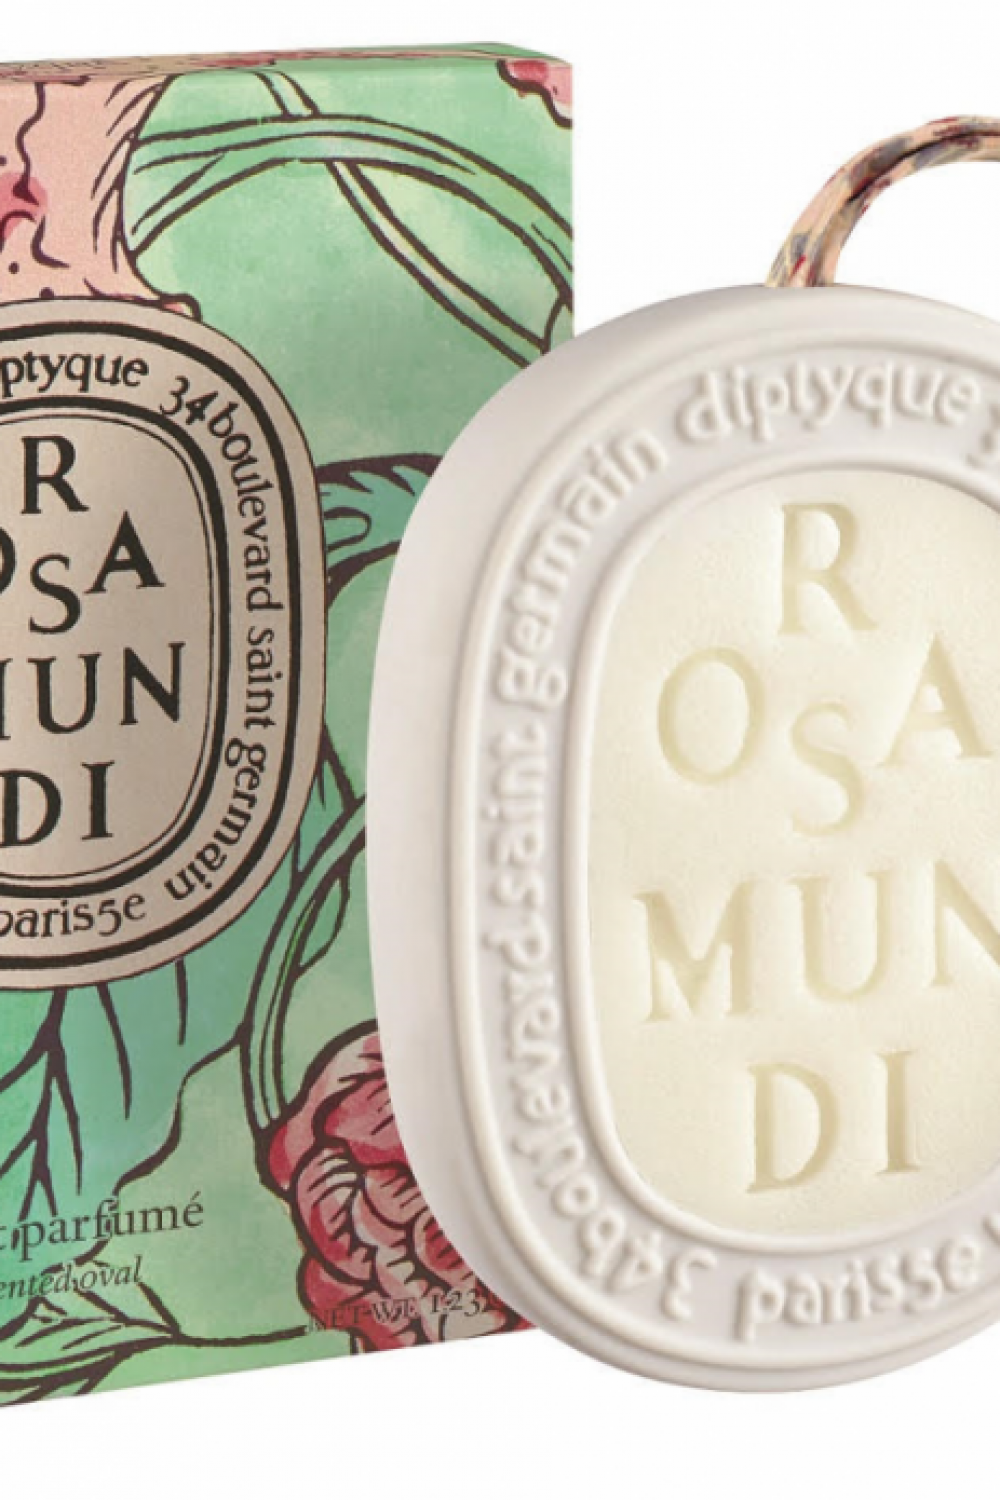 Diptyque Rosa Mundi for Valentine's Day